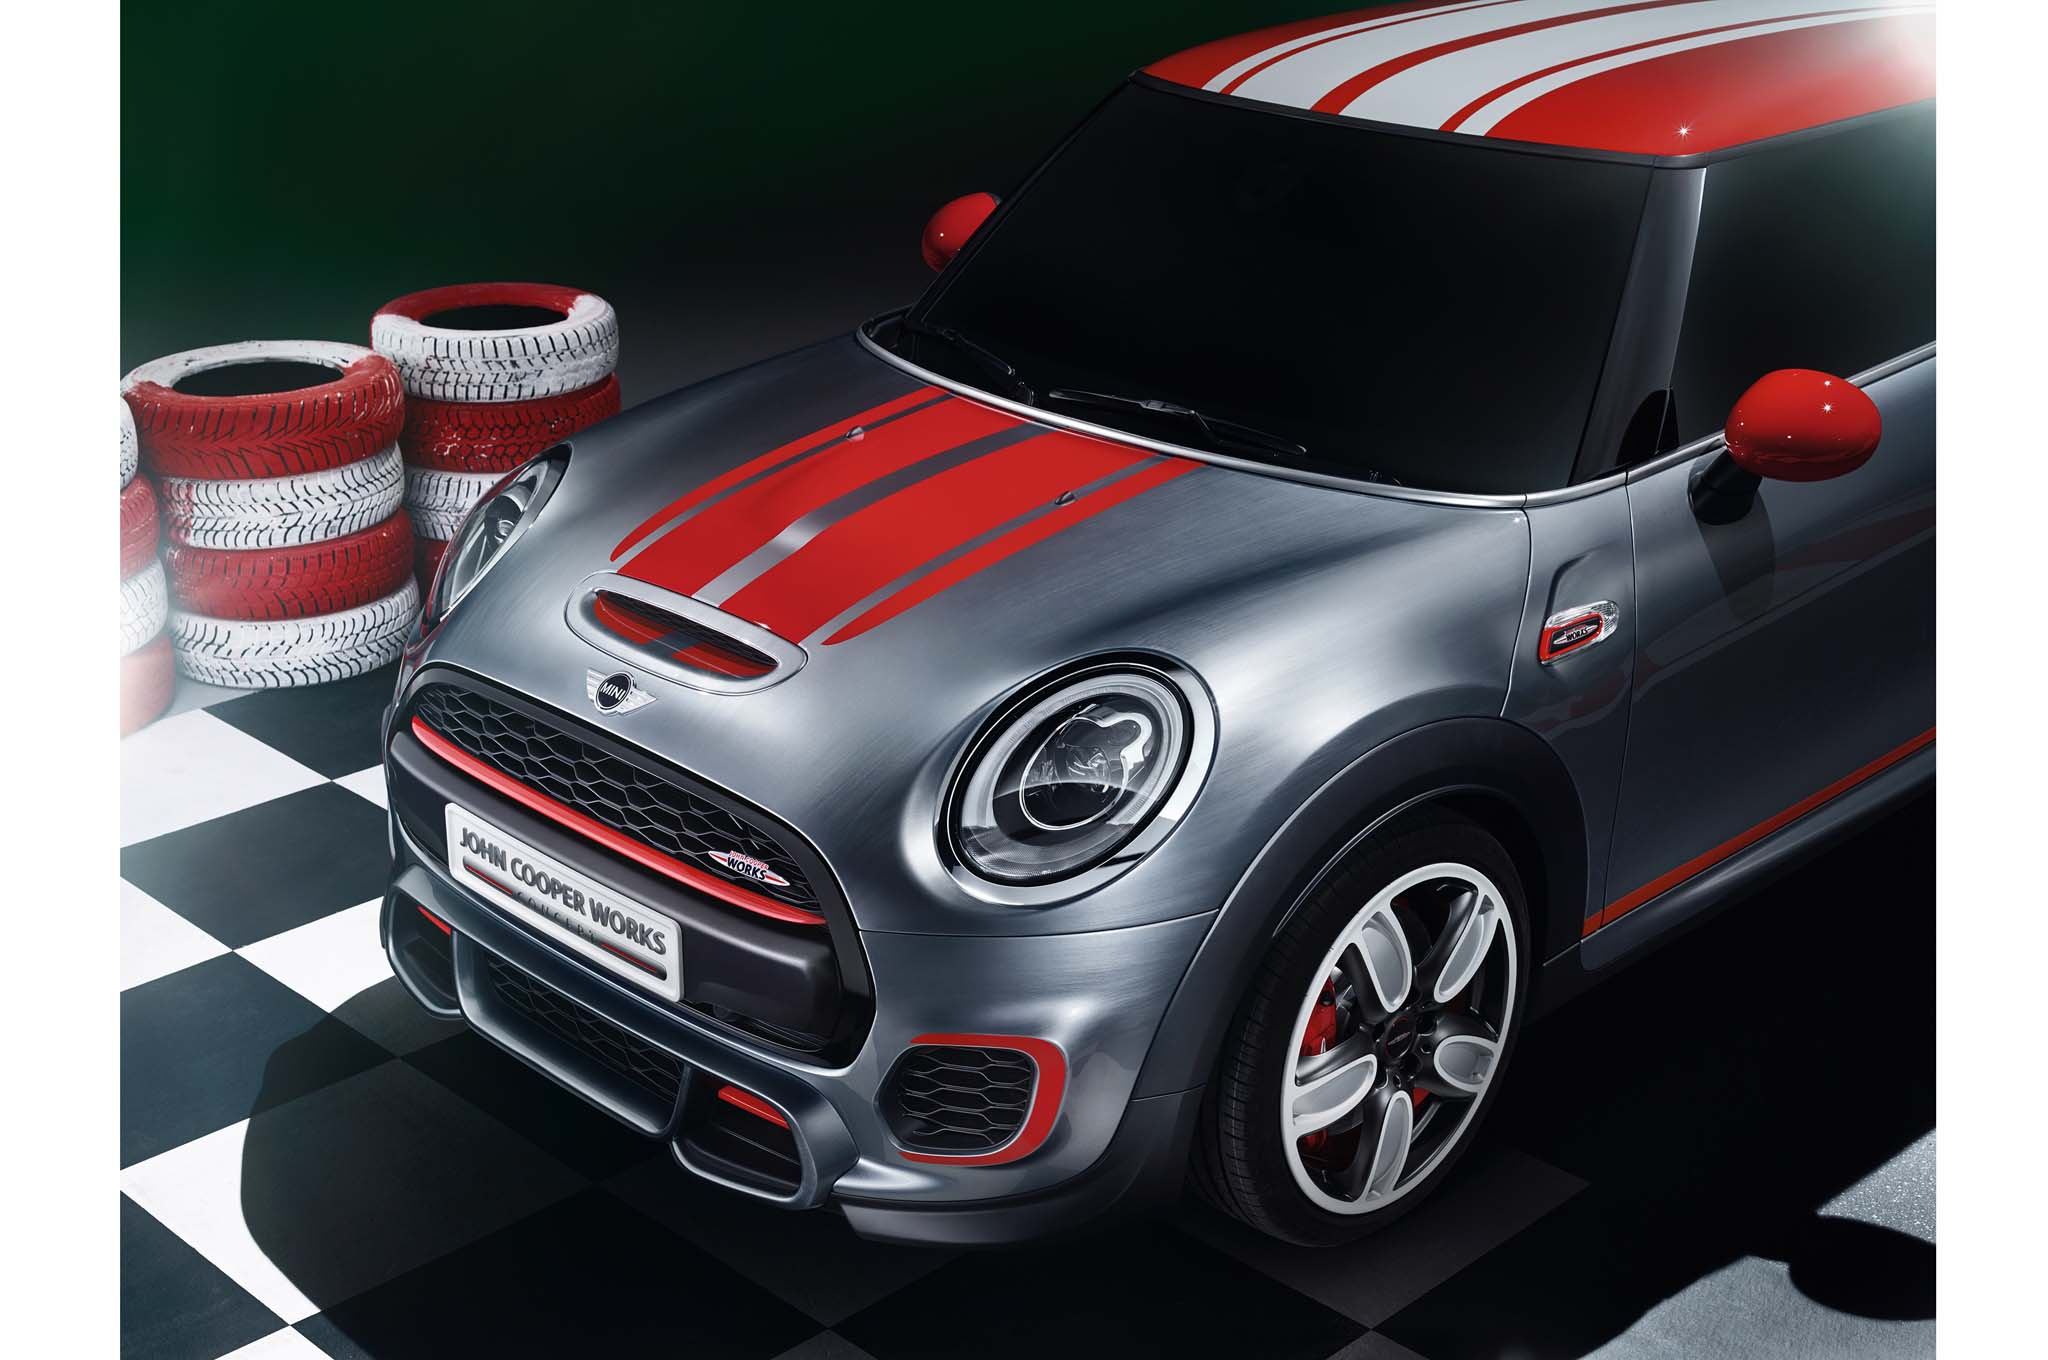 In terms of looks the mini john cooper works